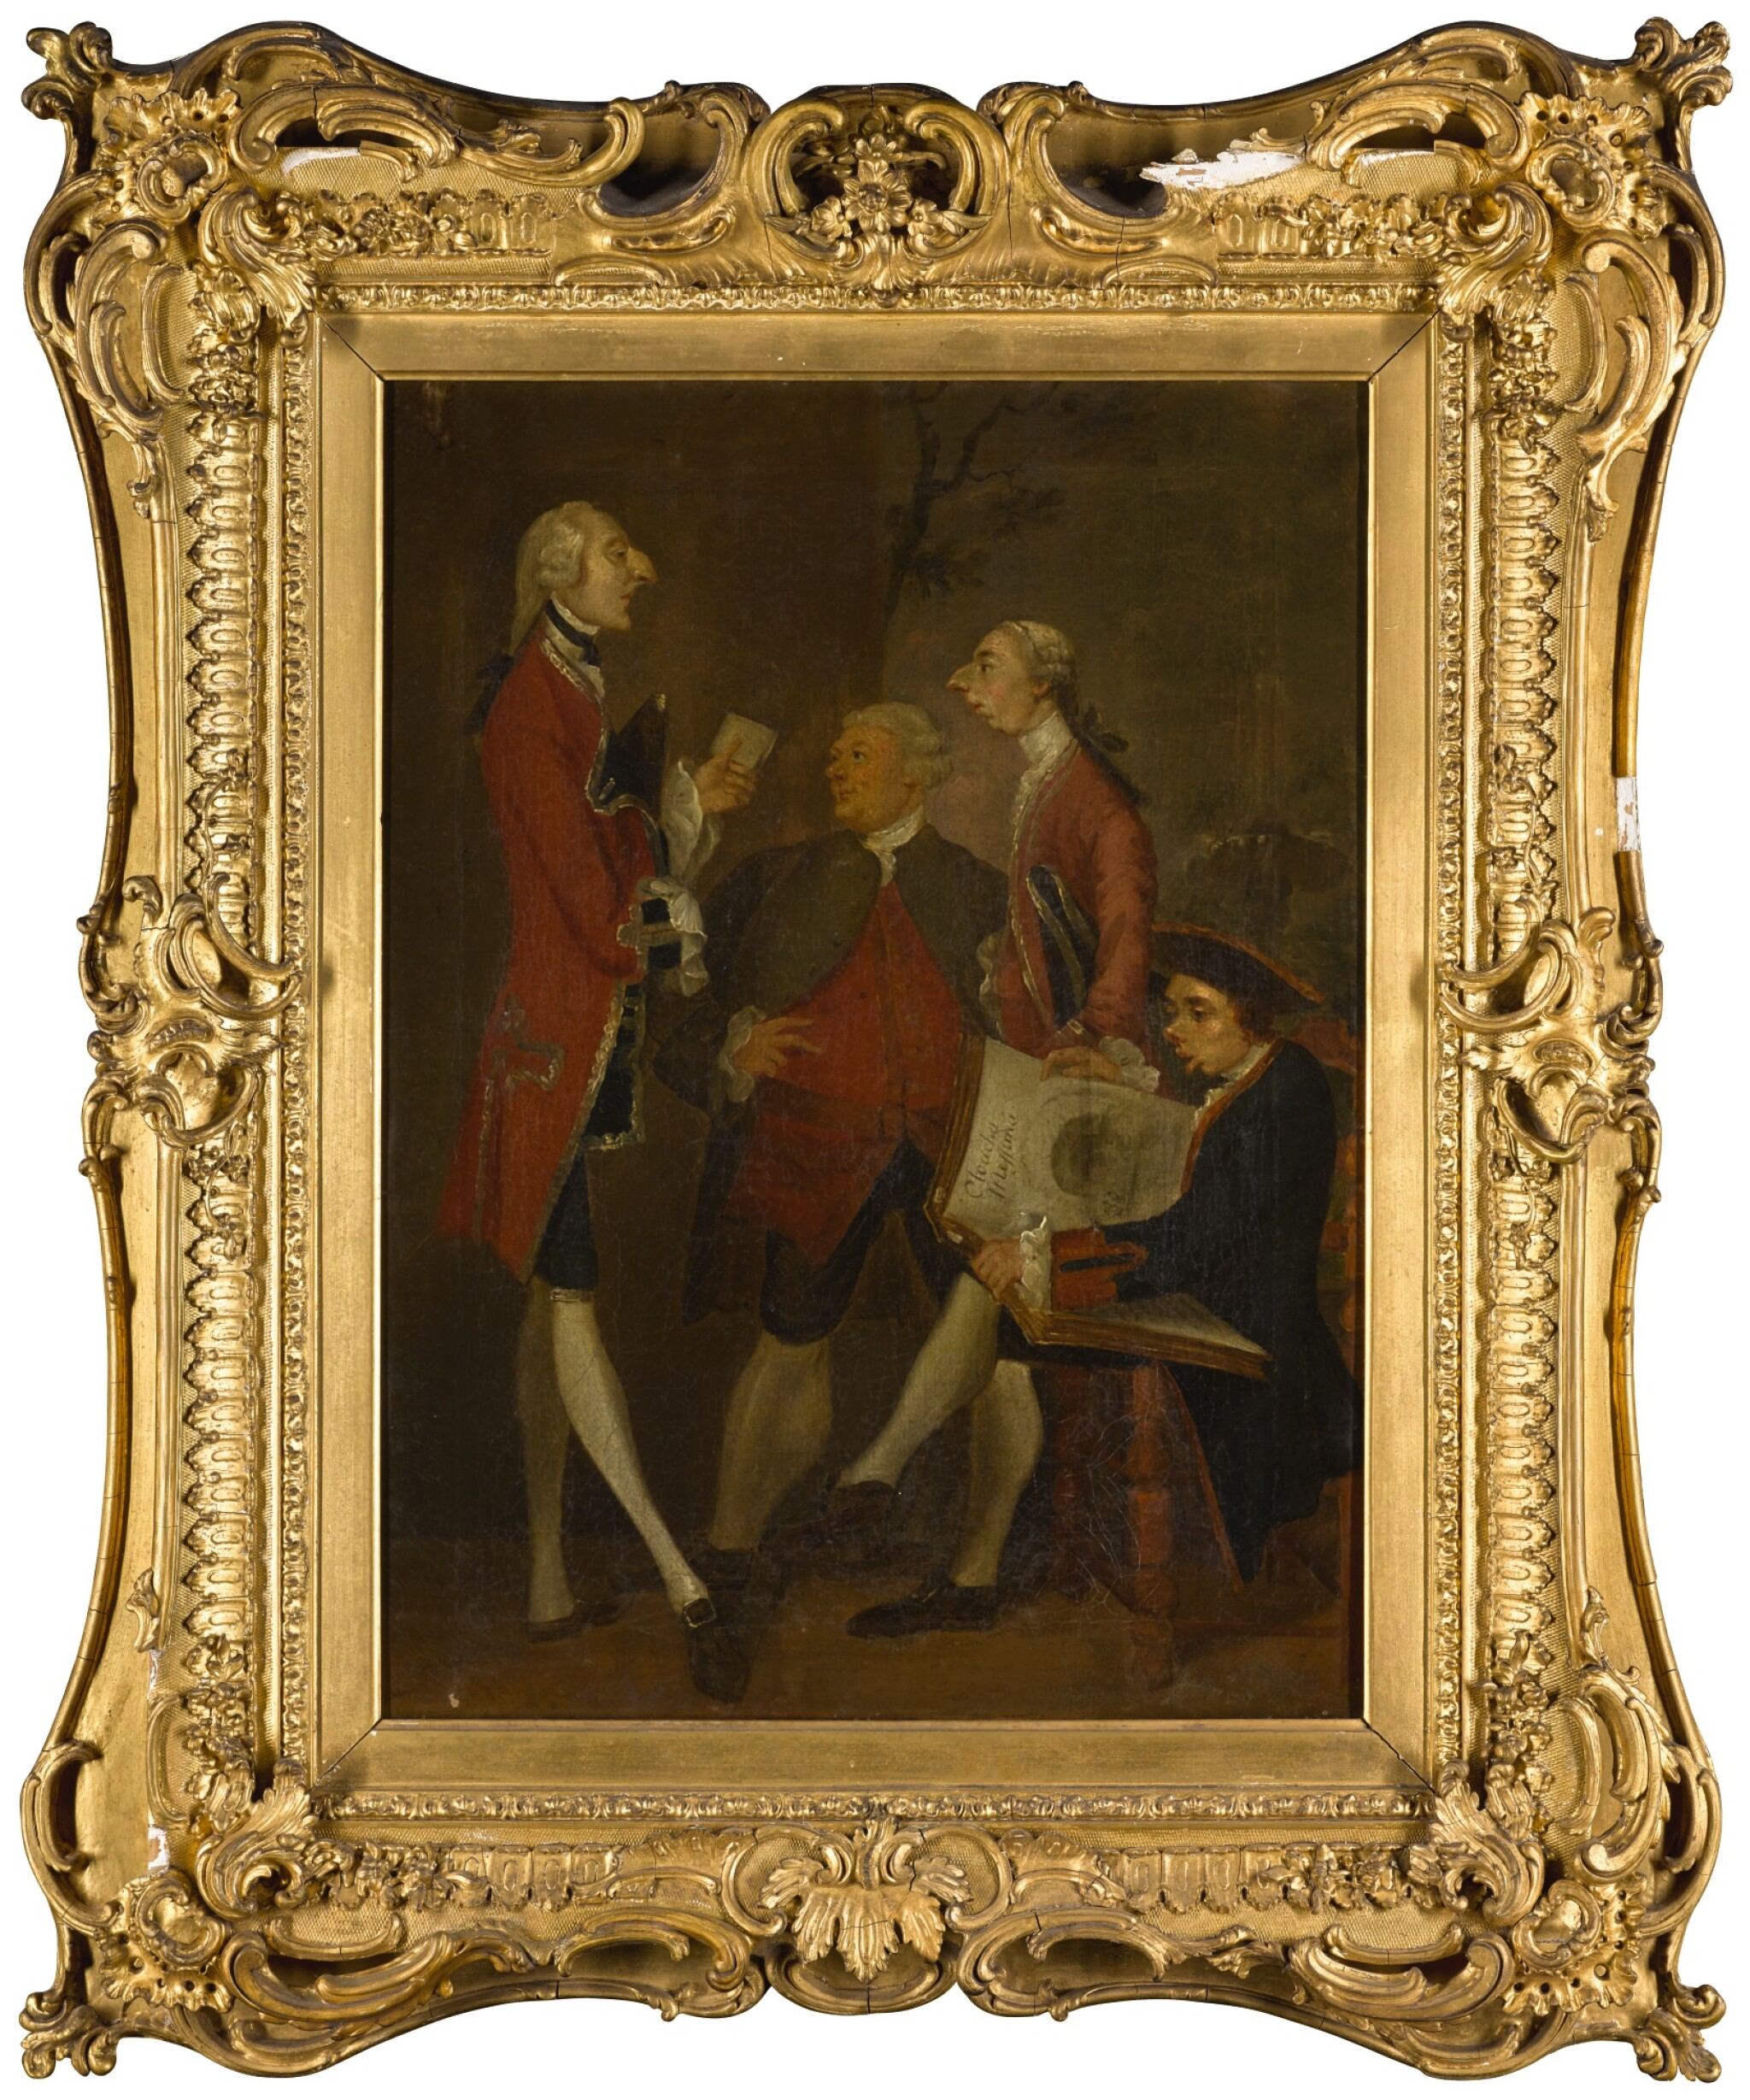 View full screen - View 1 of Lot 57. AFTER SIR JOSHUA REYNOLDS | CARICATURE OF THOMAS BRUDENELL-BRUCE, 1ST EARL OF AILESBURY, THE HON. JOHN WARD, JOSEPH LEESON, LATER 2ND EARL OF MILLTOWN, AND JOSEPH HENRY OF STRAFFAN.